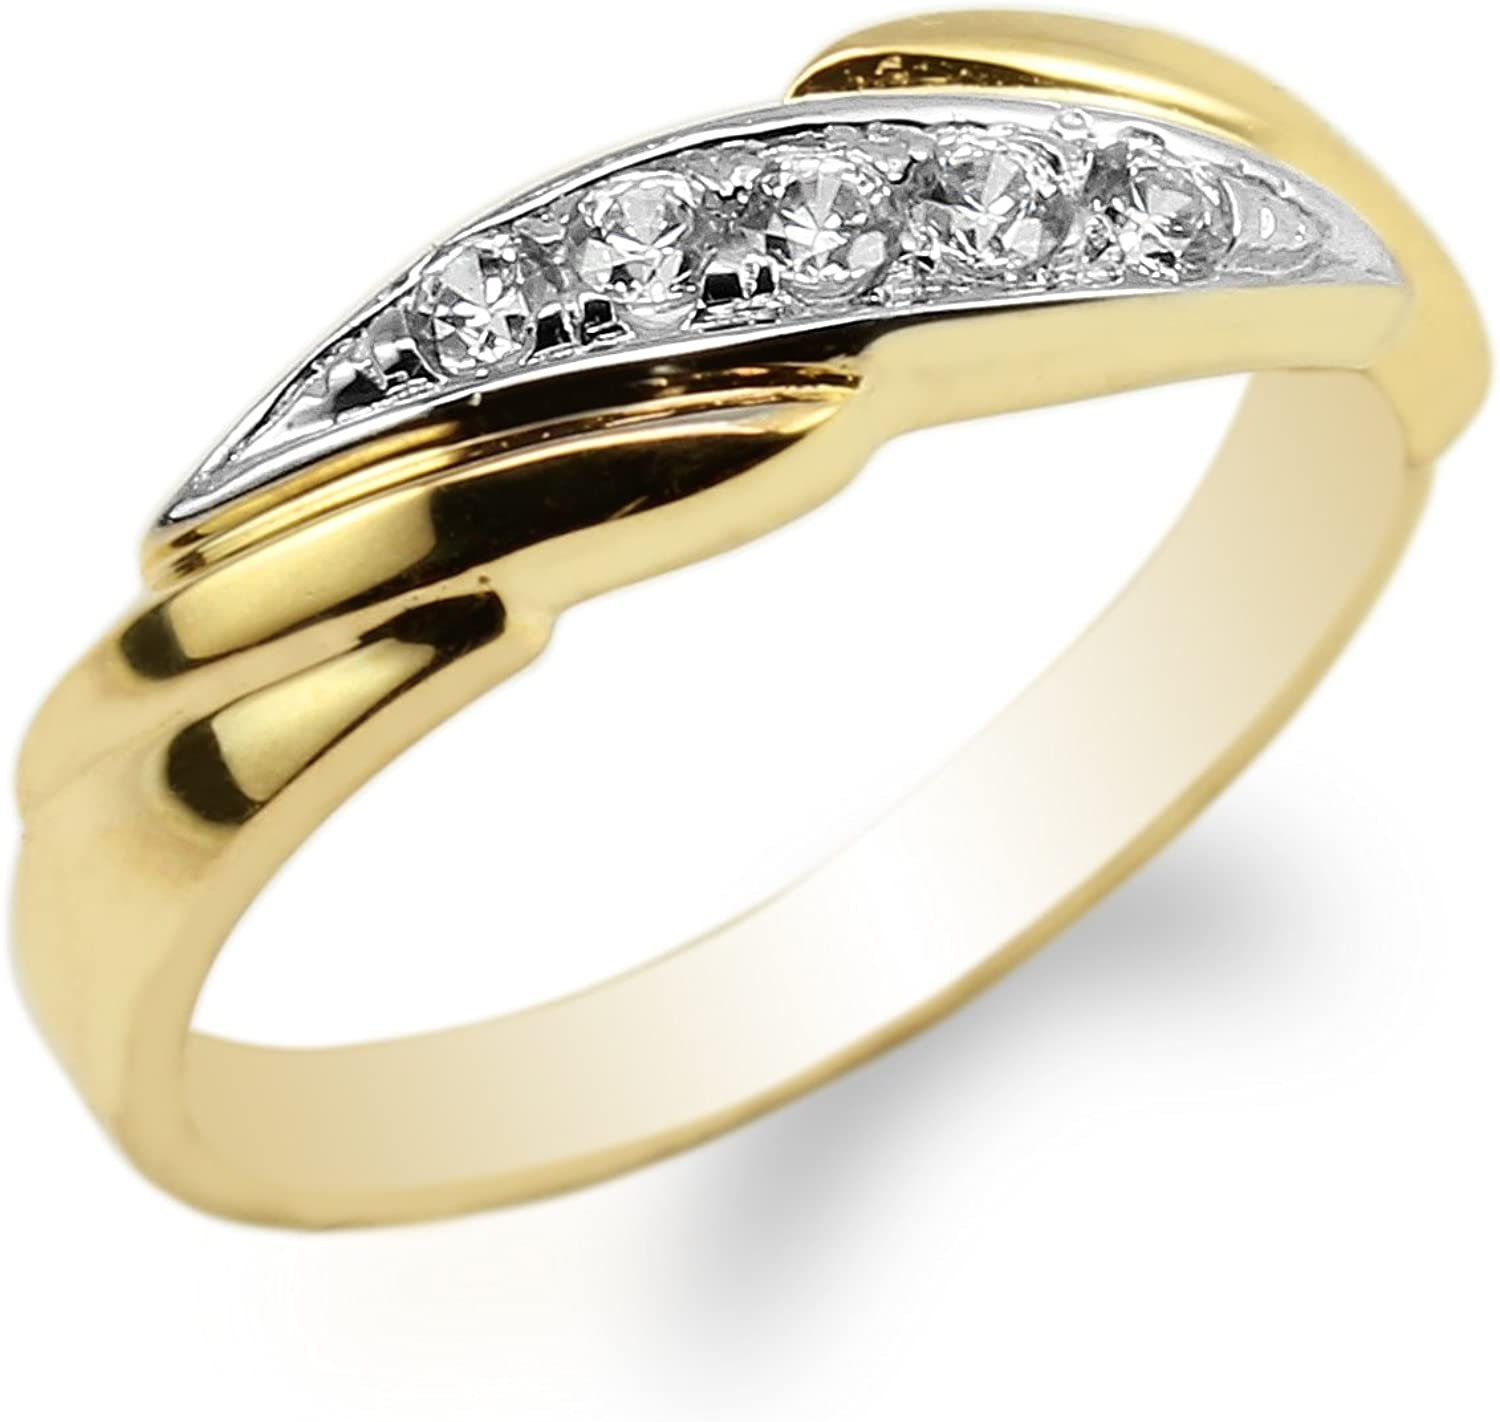 JamesJenny 10K Yellow Gold Two Tone Colored Luxury Wedding Band Ladies Ring Size 4-10